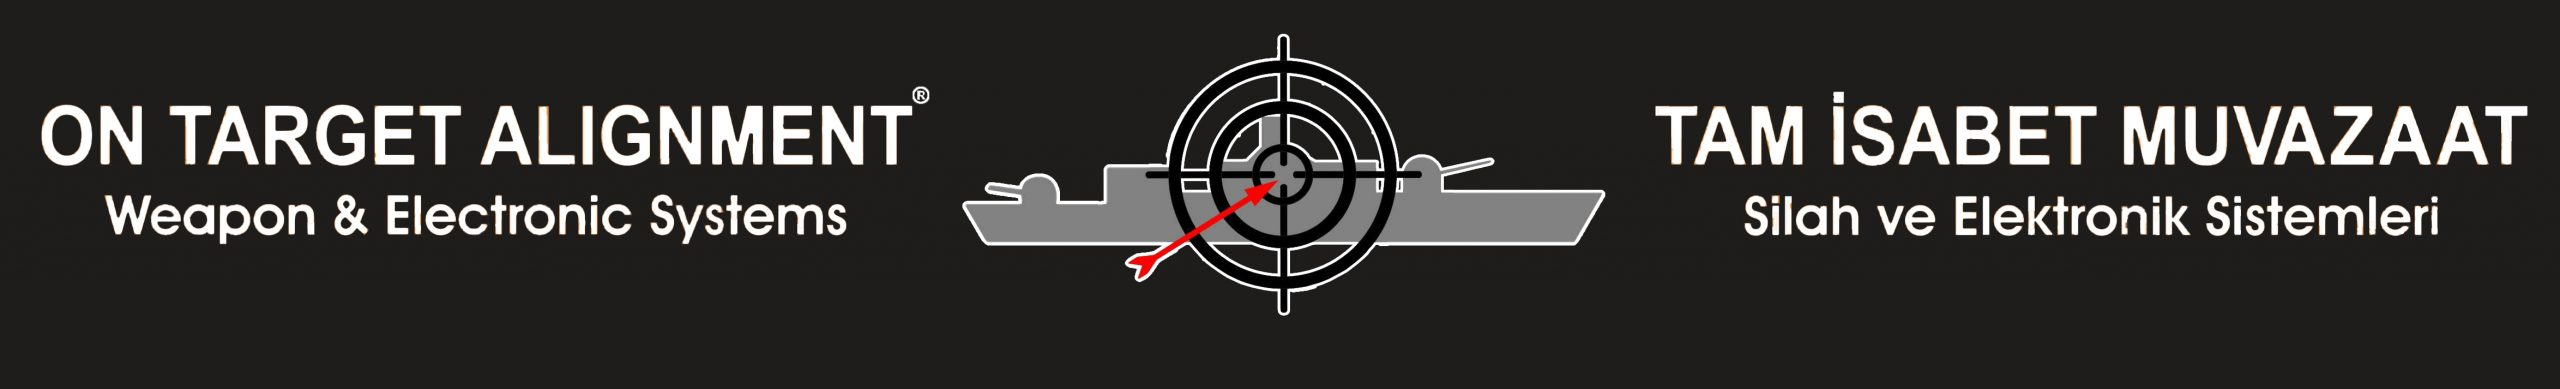 On Target Alignment